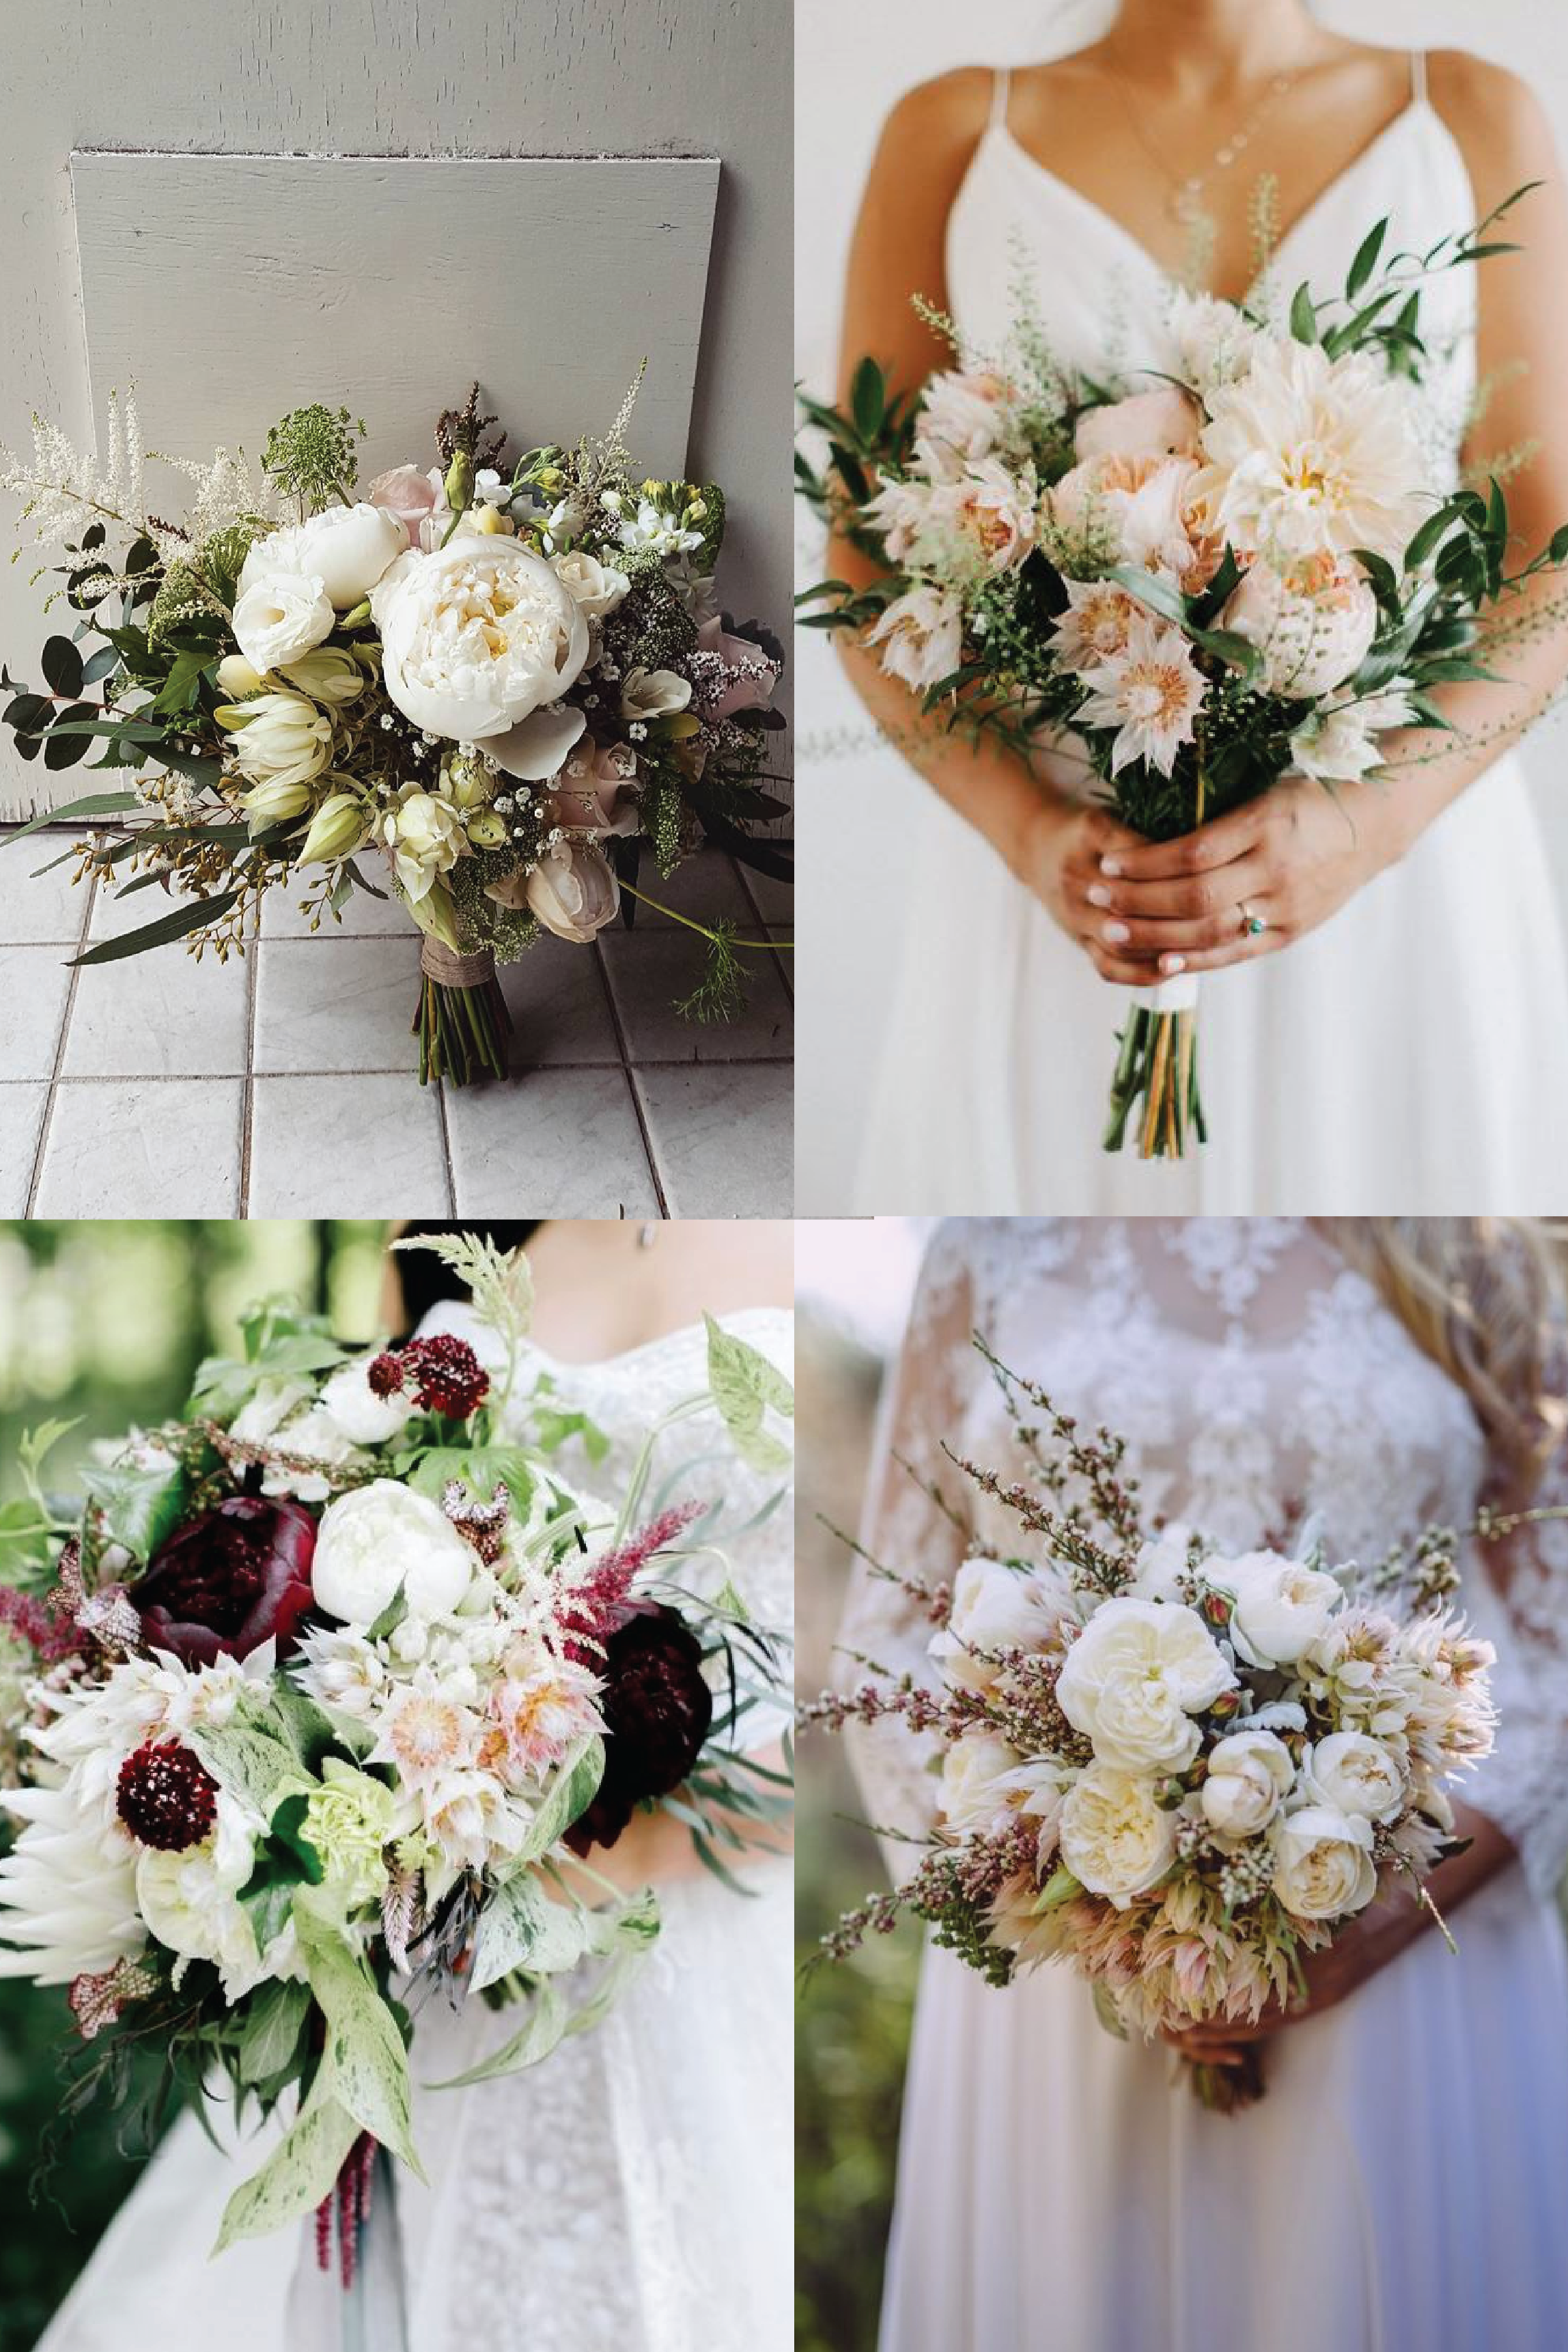 From clockwise, from top left:  flowers and photo by Lime Tree Bower; flowers by  Sara K Byrne  and photo by  Dylan M Howell ; flowers by  Sullivan Owen  and photo by  Emily Wren Weddings ; flowers by  Wild Lotus Florist  and photo by  Kieran Moore .